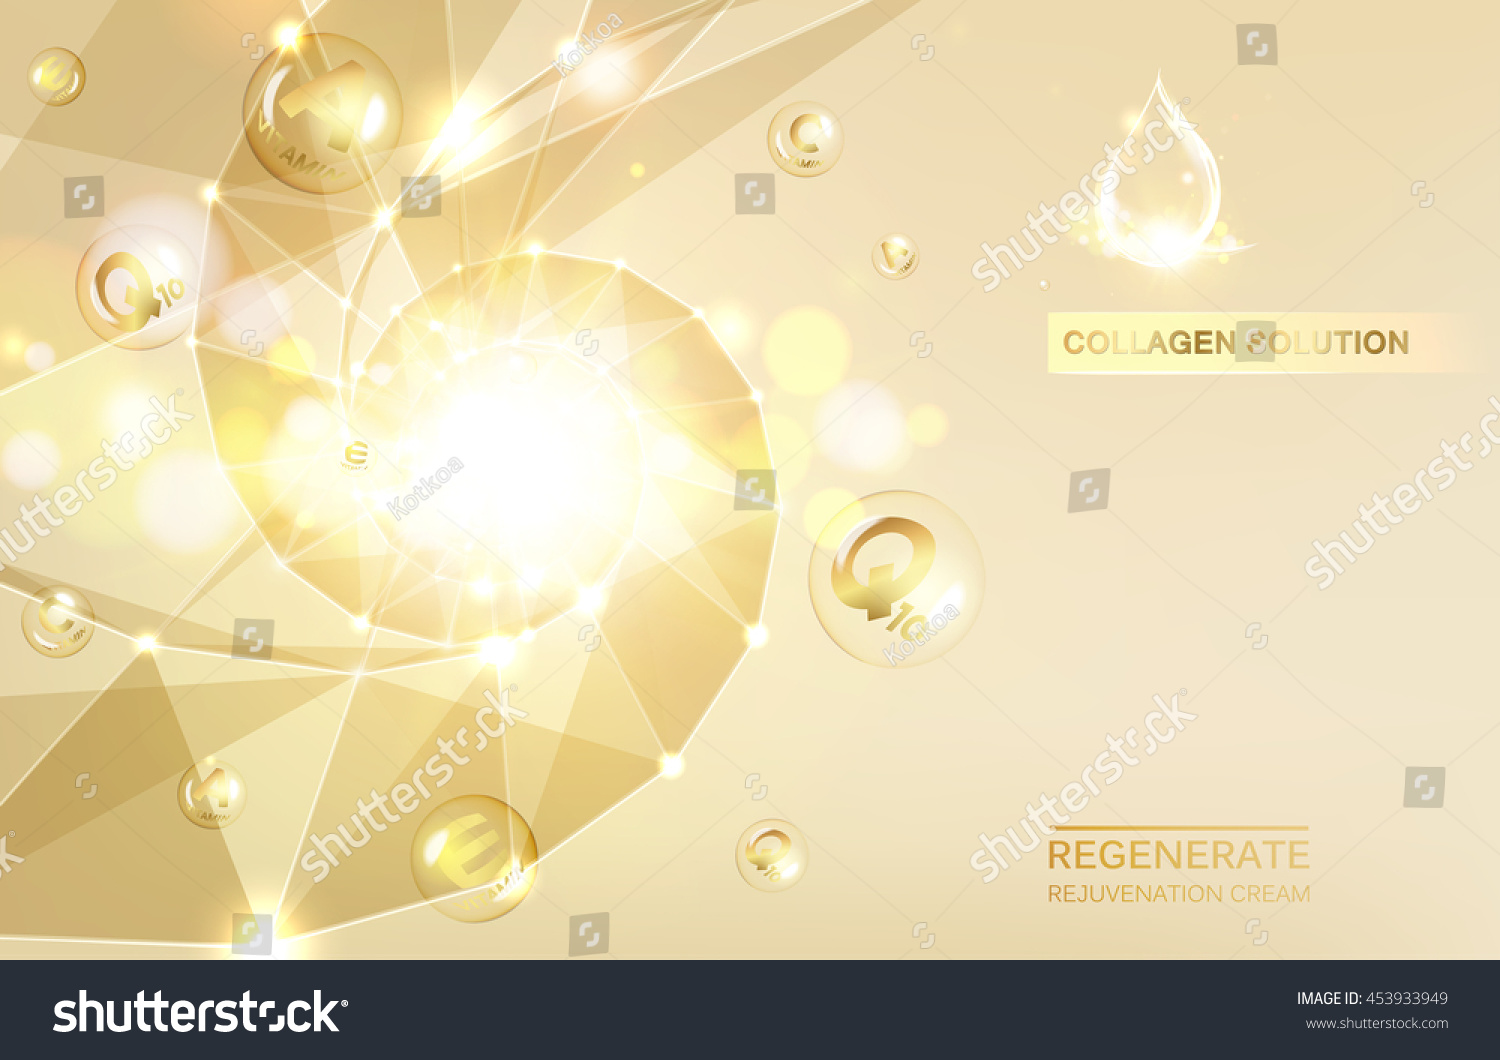 Regenerate Face Cream Vitamin Complex Concept Stock Vector